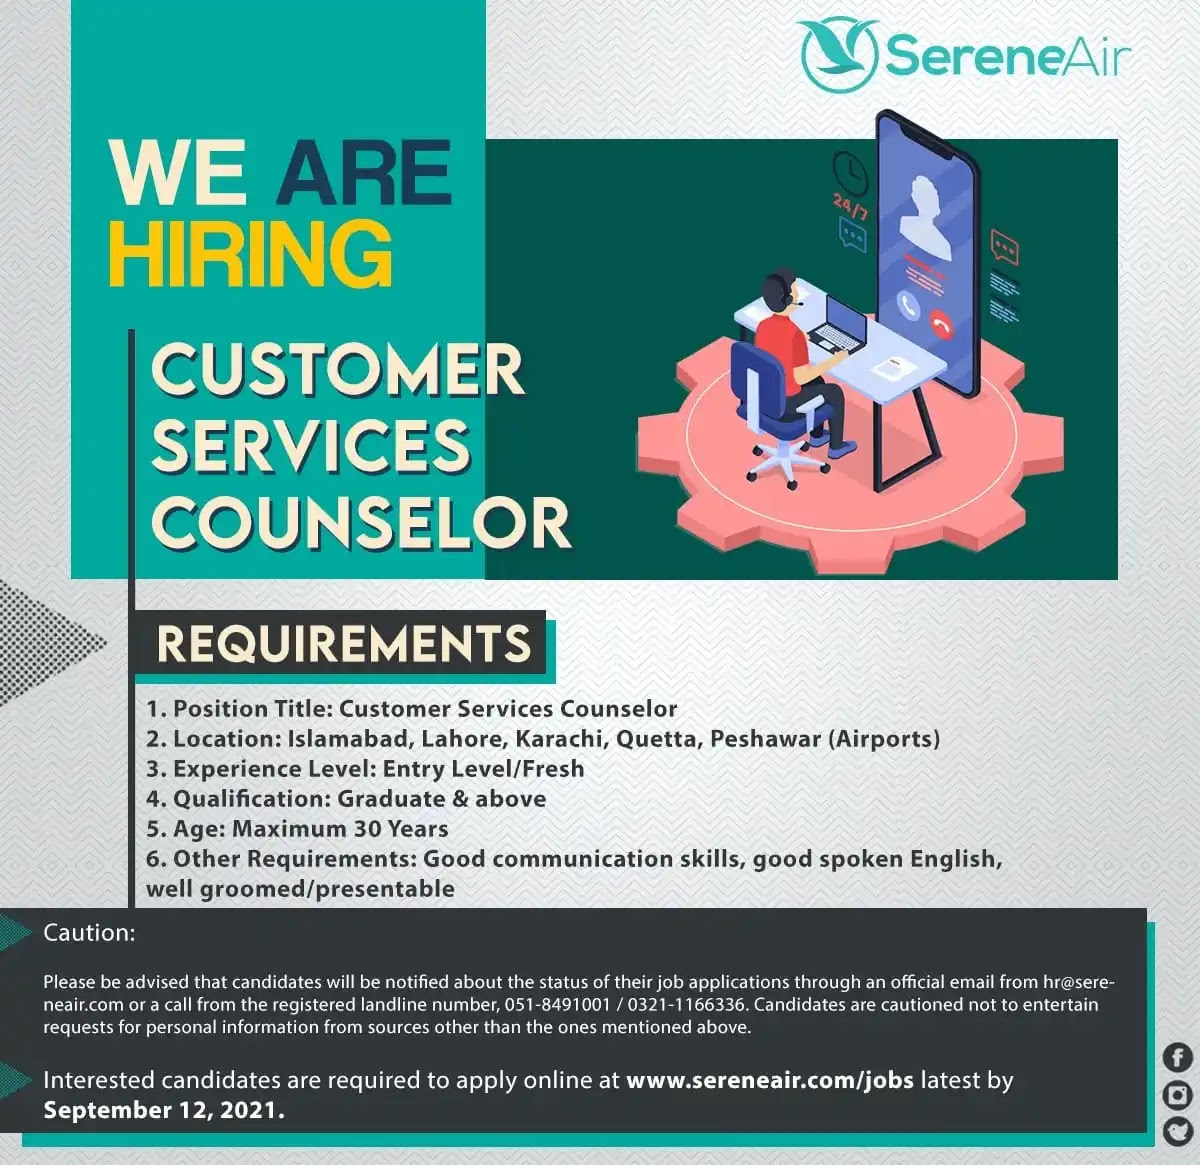 Serene Air Jobs 2021 for Customer Services Counselor